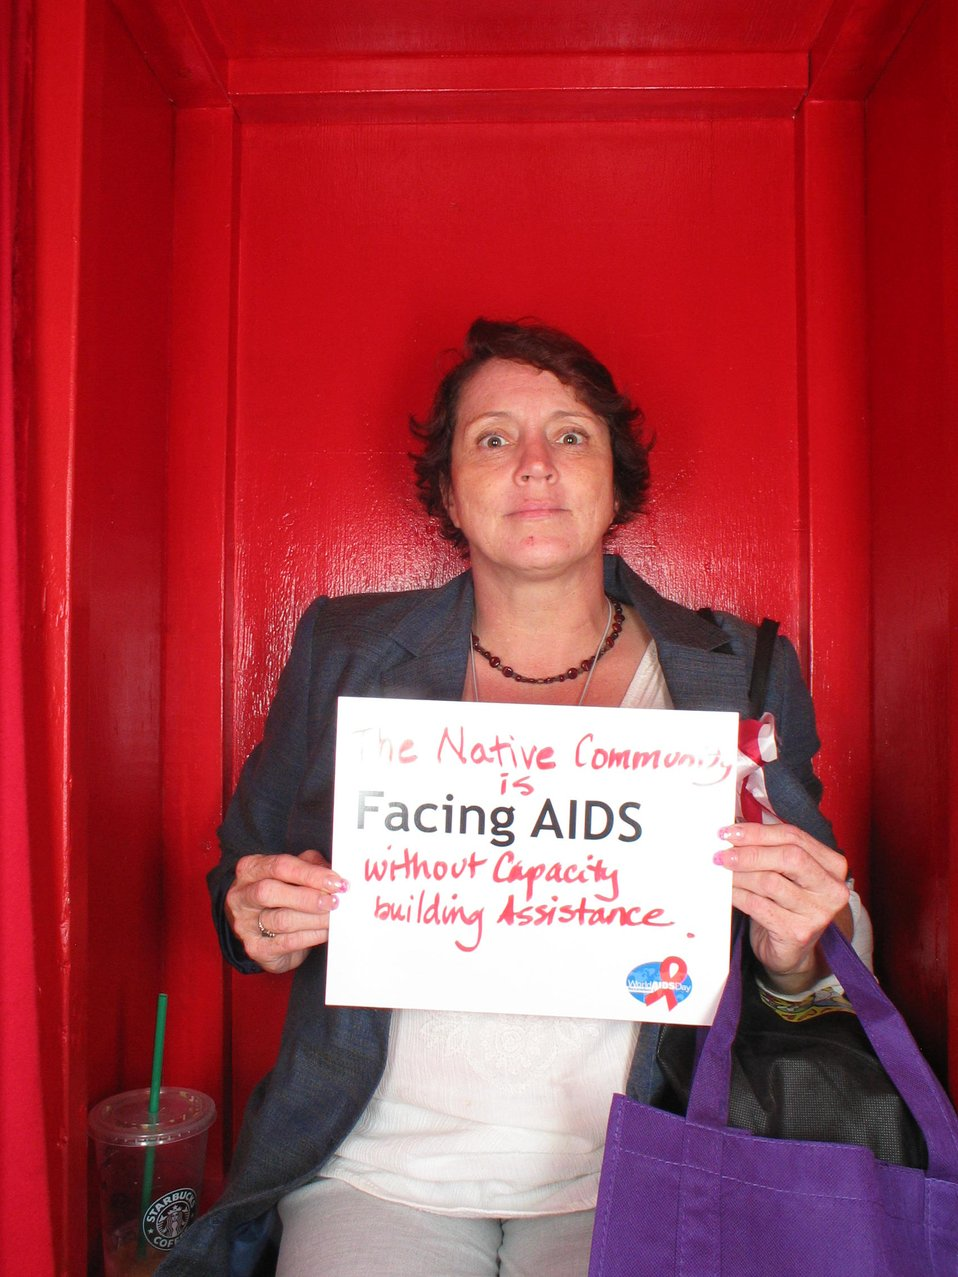 The native community is Facing AIDS without capacity building assistance.